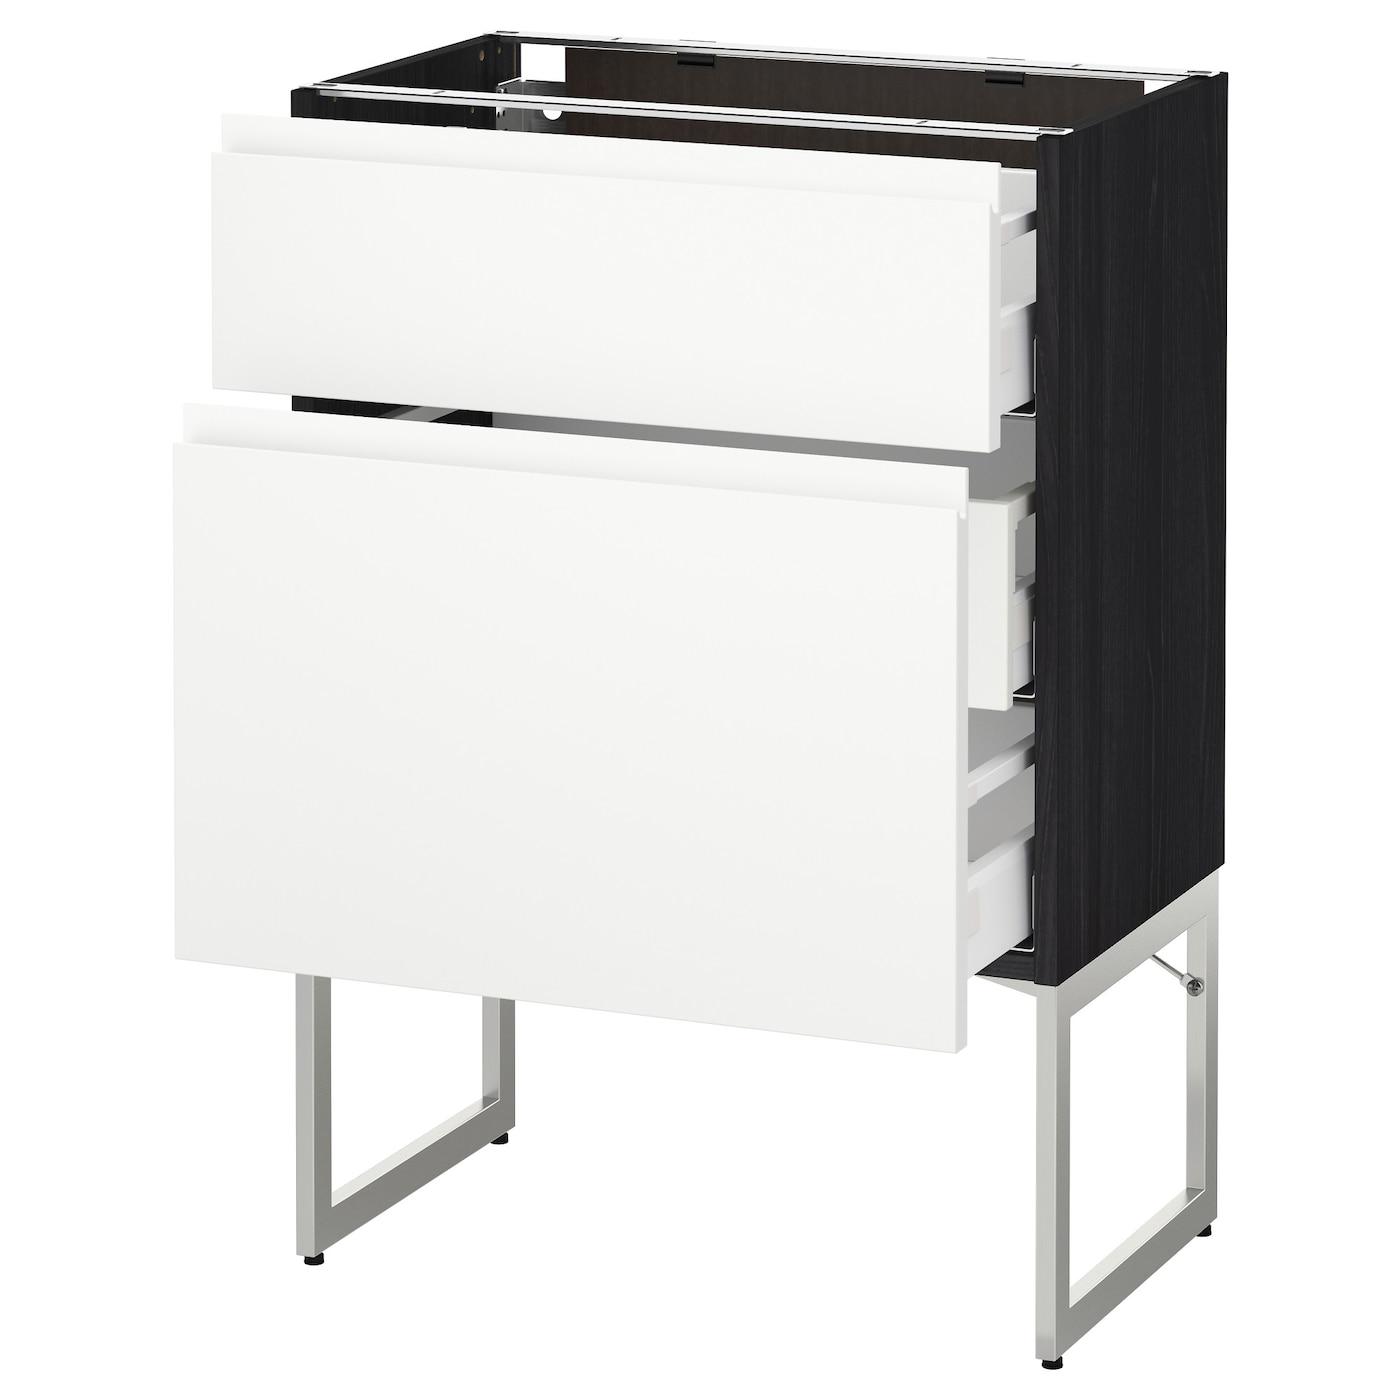 IKEA METOD/MAXIMERA base cab 2 fronts/3 medium drawrs Smooth-running drawers with stop.